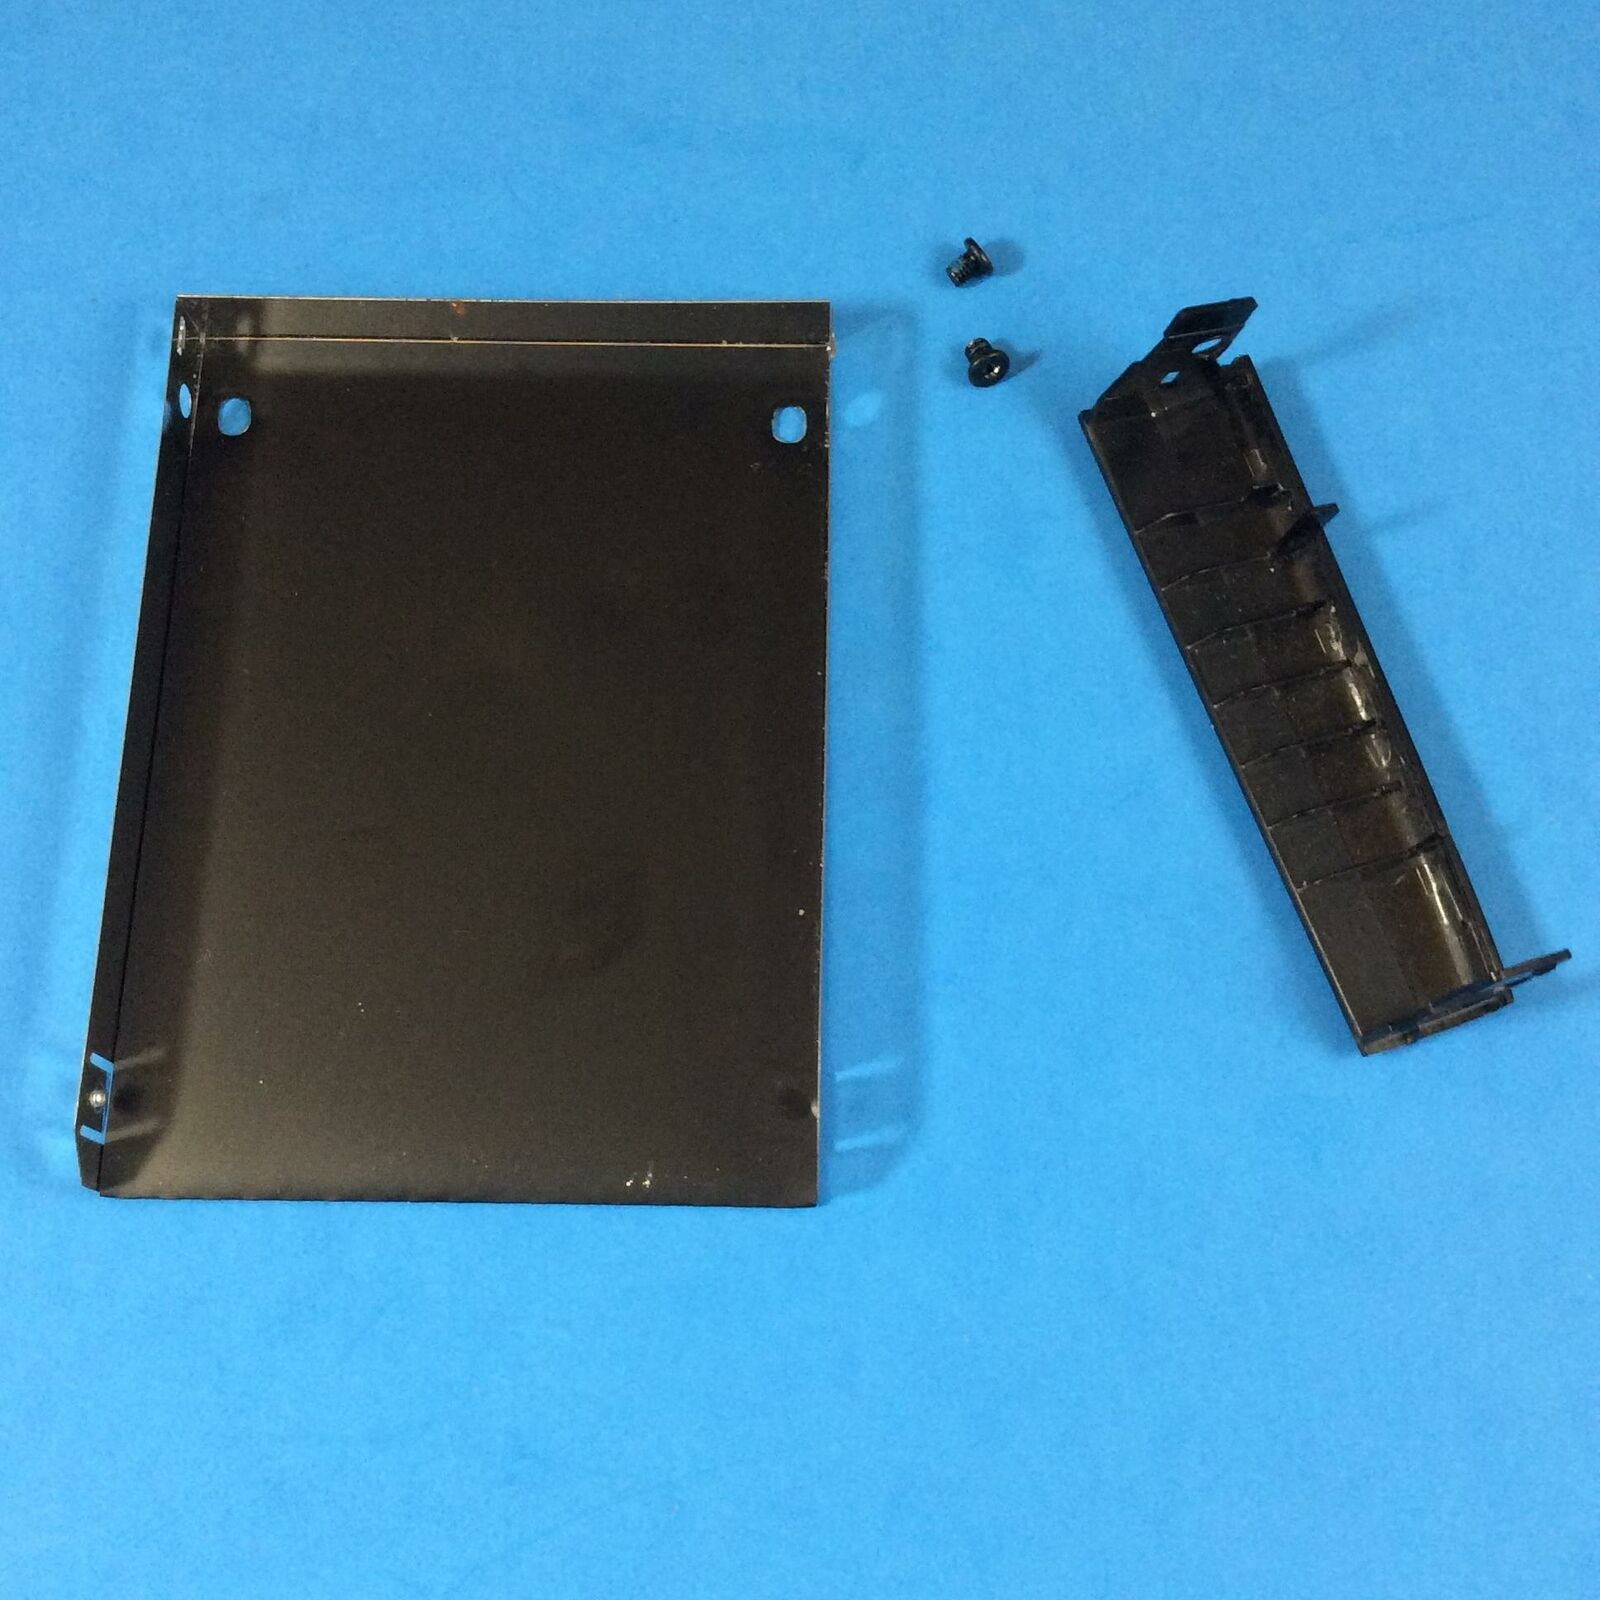 CB314 M671J OEM DELL HARD DRIVE CADDY ENCLOSURE INSPIRON 1545 PP41L GRD A